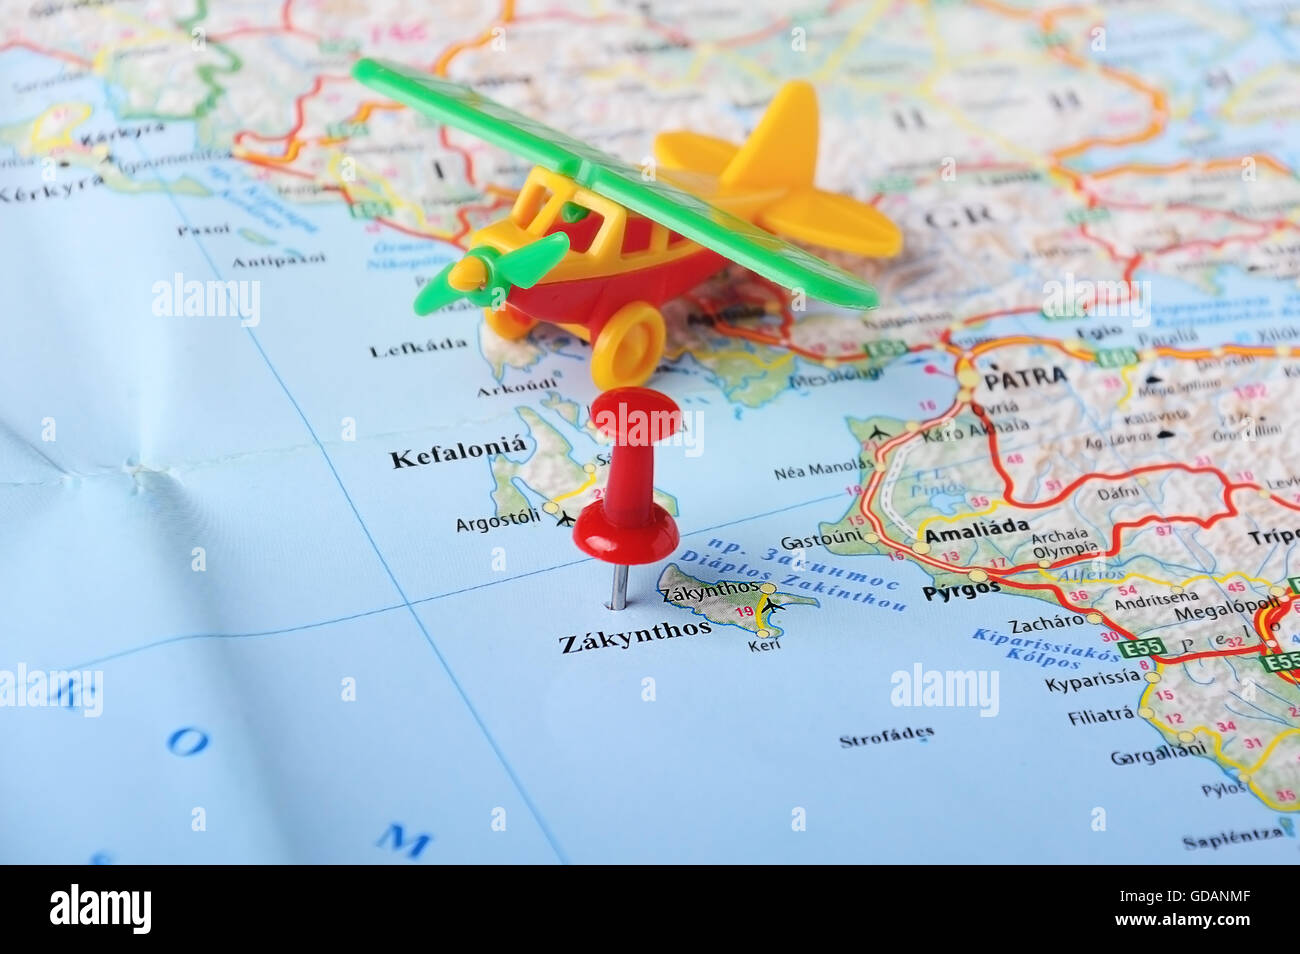 Close up of zakynthos island greece map and airplane toy stock close up of zakynthos island greece map and airplane toy travel concept gumiabroncs Images